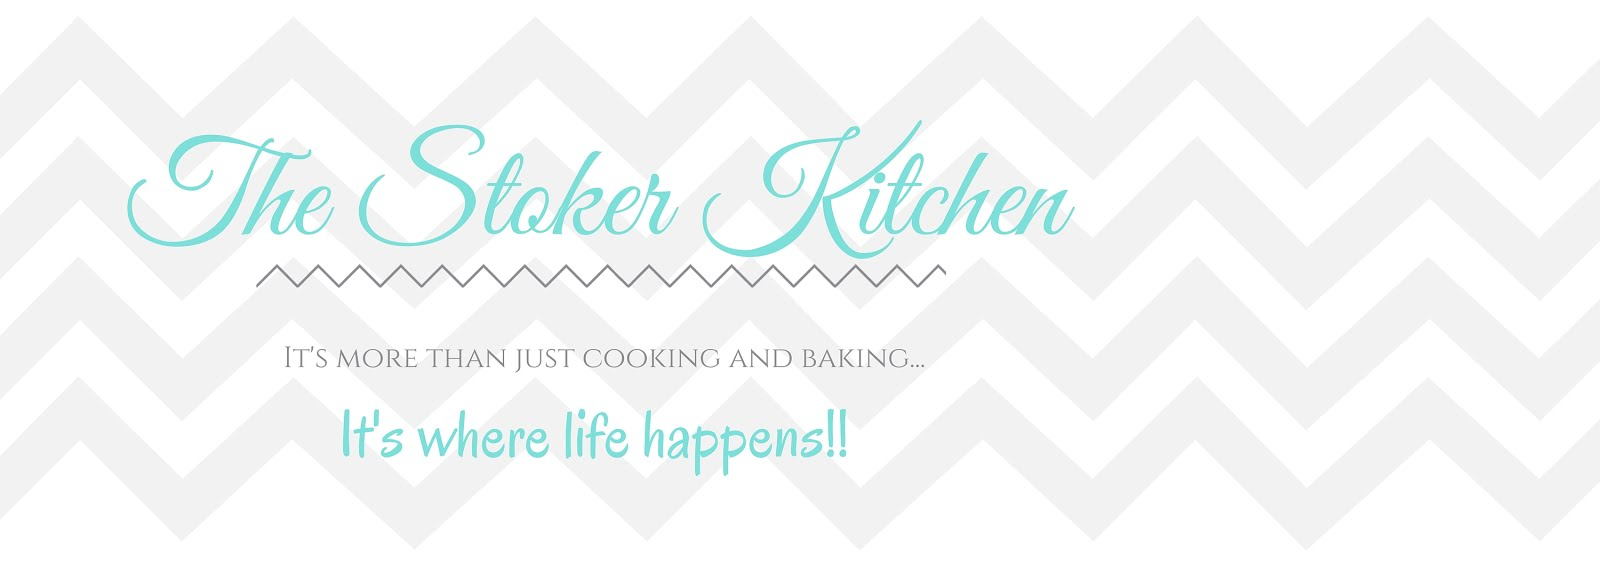 The Stoker Kitchen